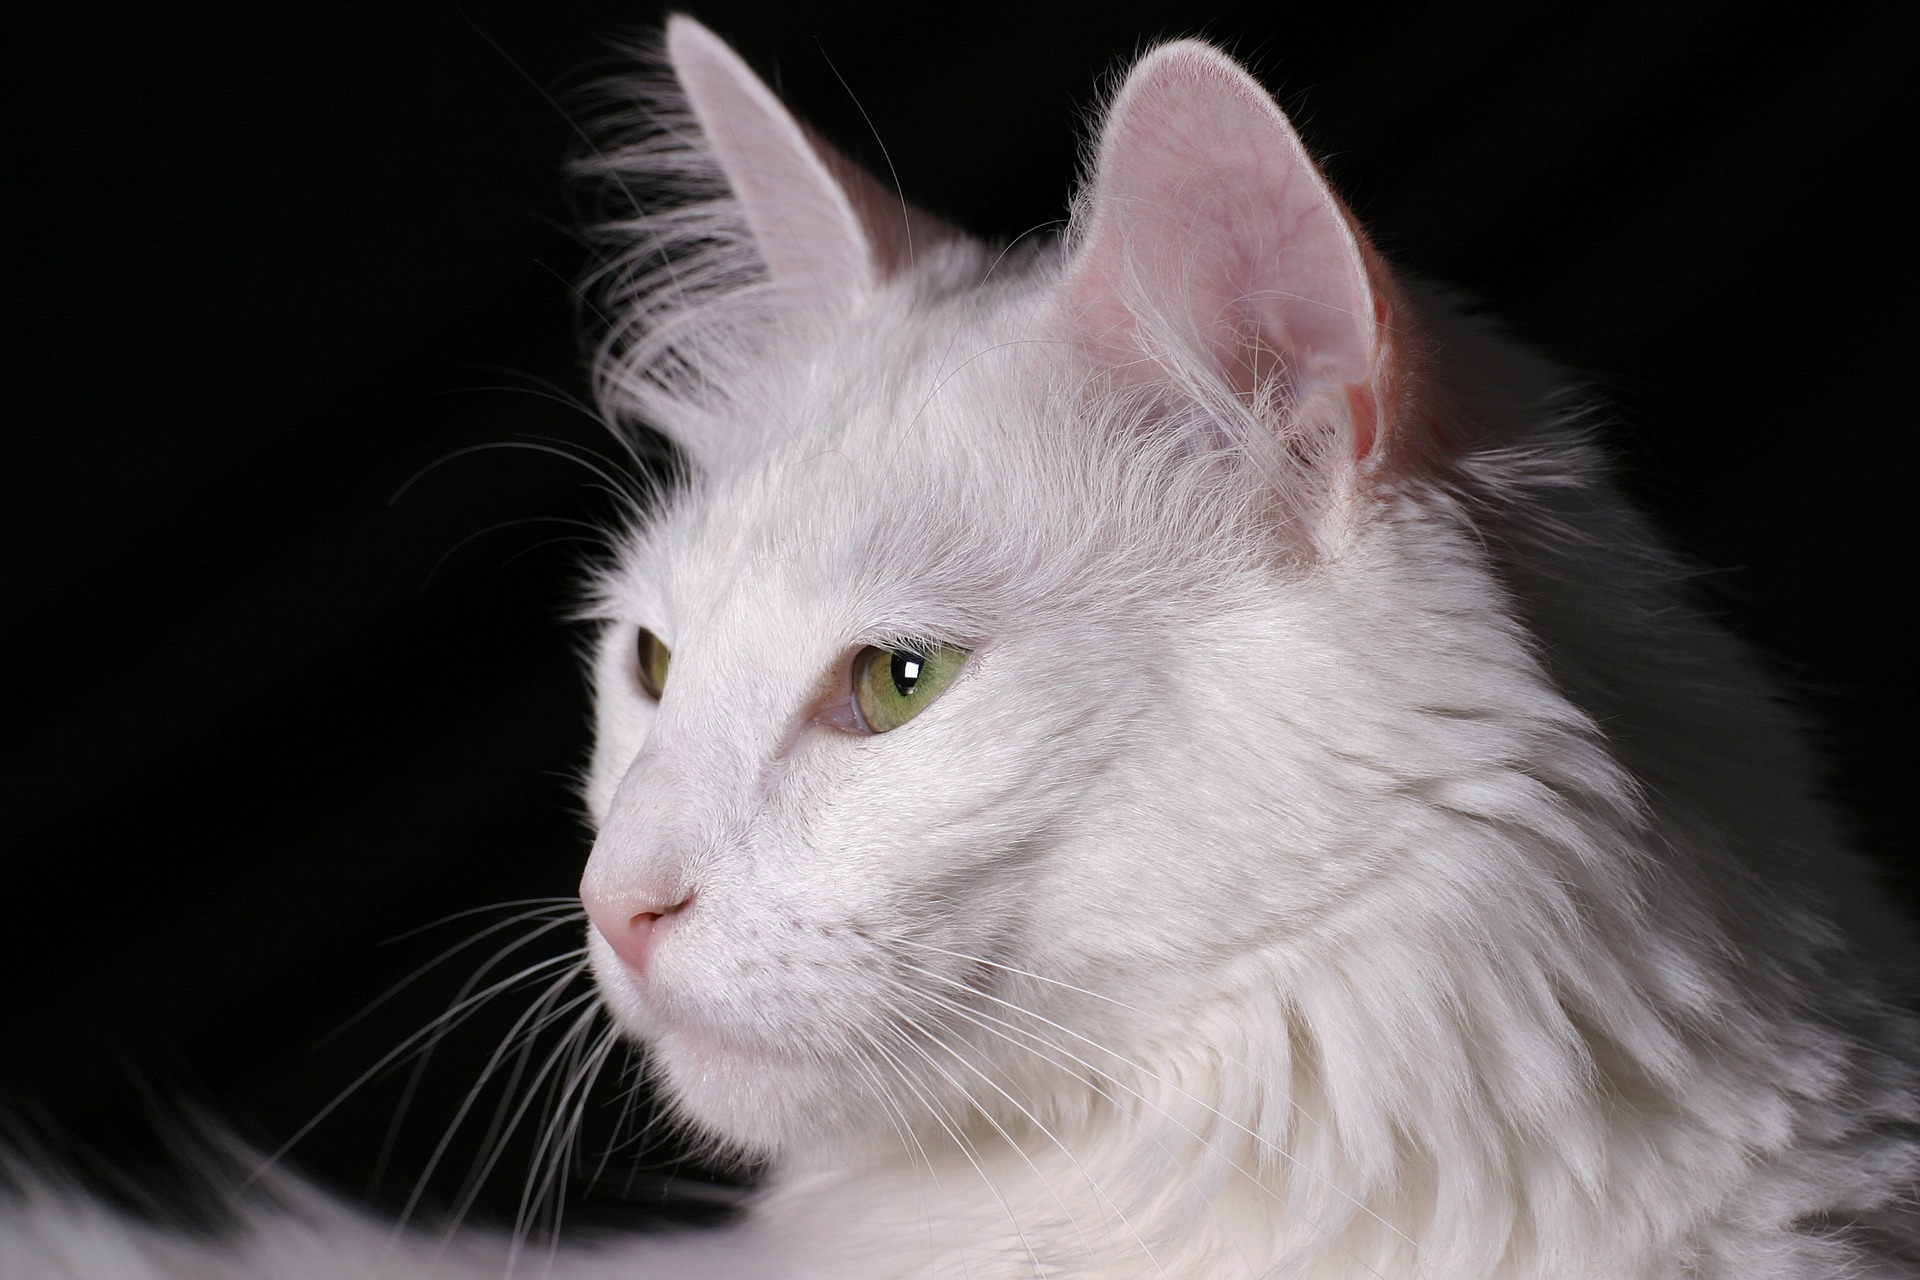 Ankara Kedisi (Turkish Angora Cat)